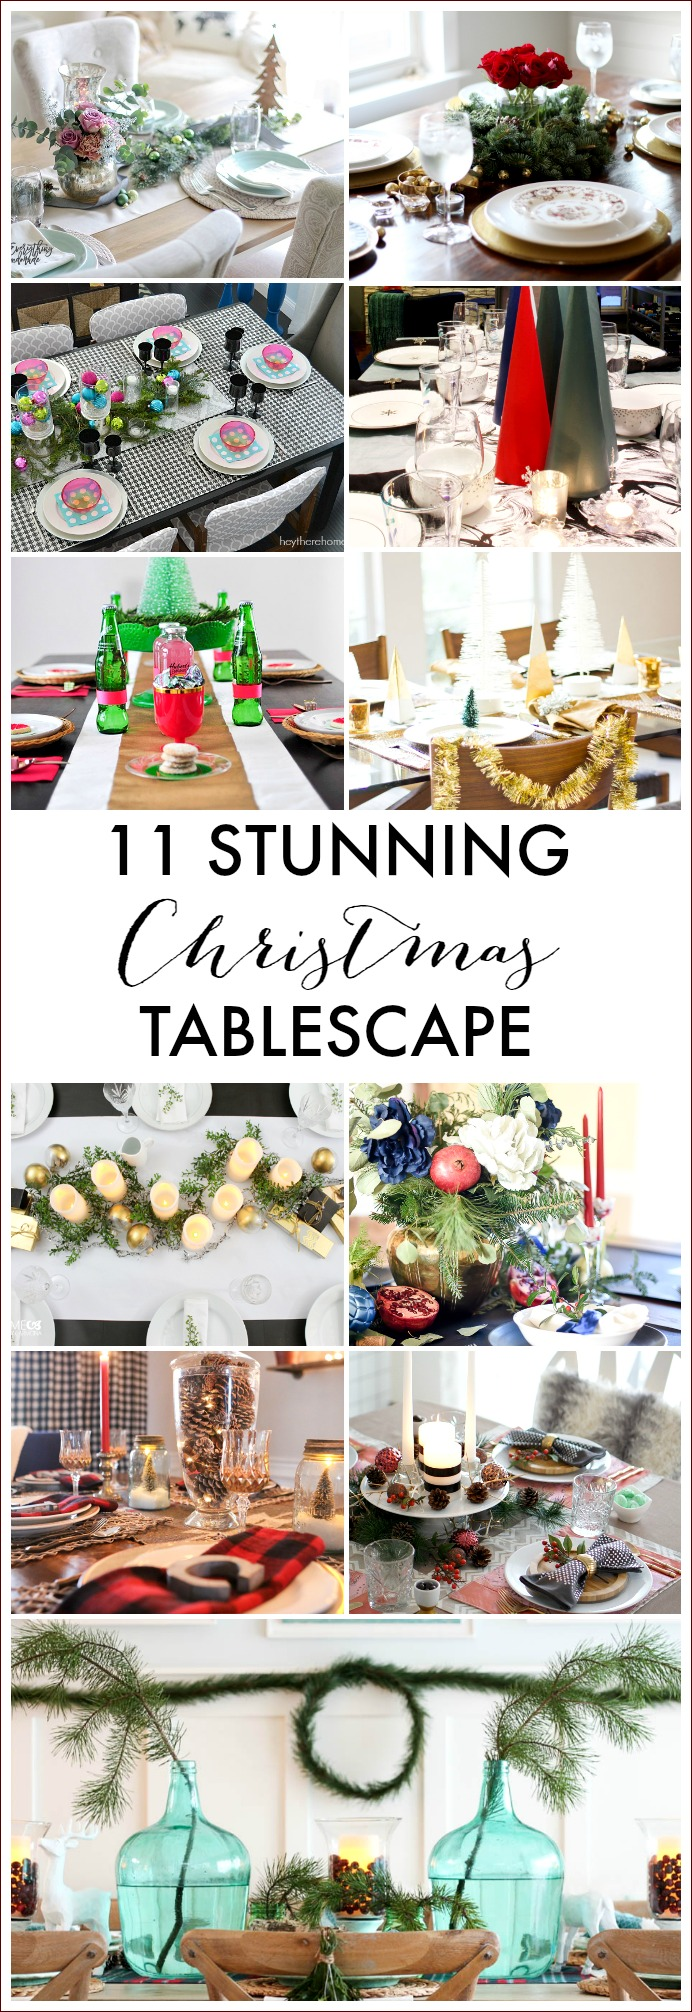 Check out these 11 Stunning Christmas Tablescapes to inspire your holiday table decor.